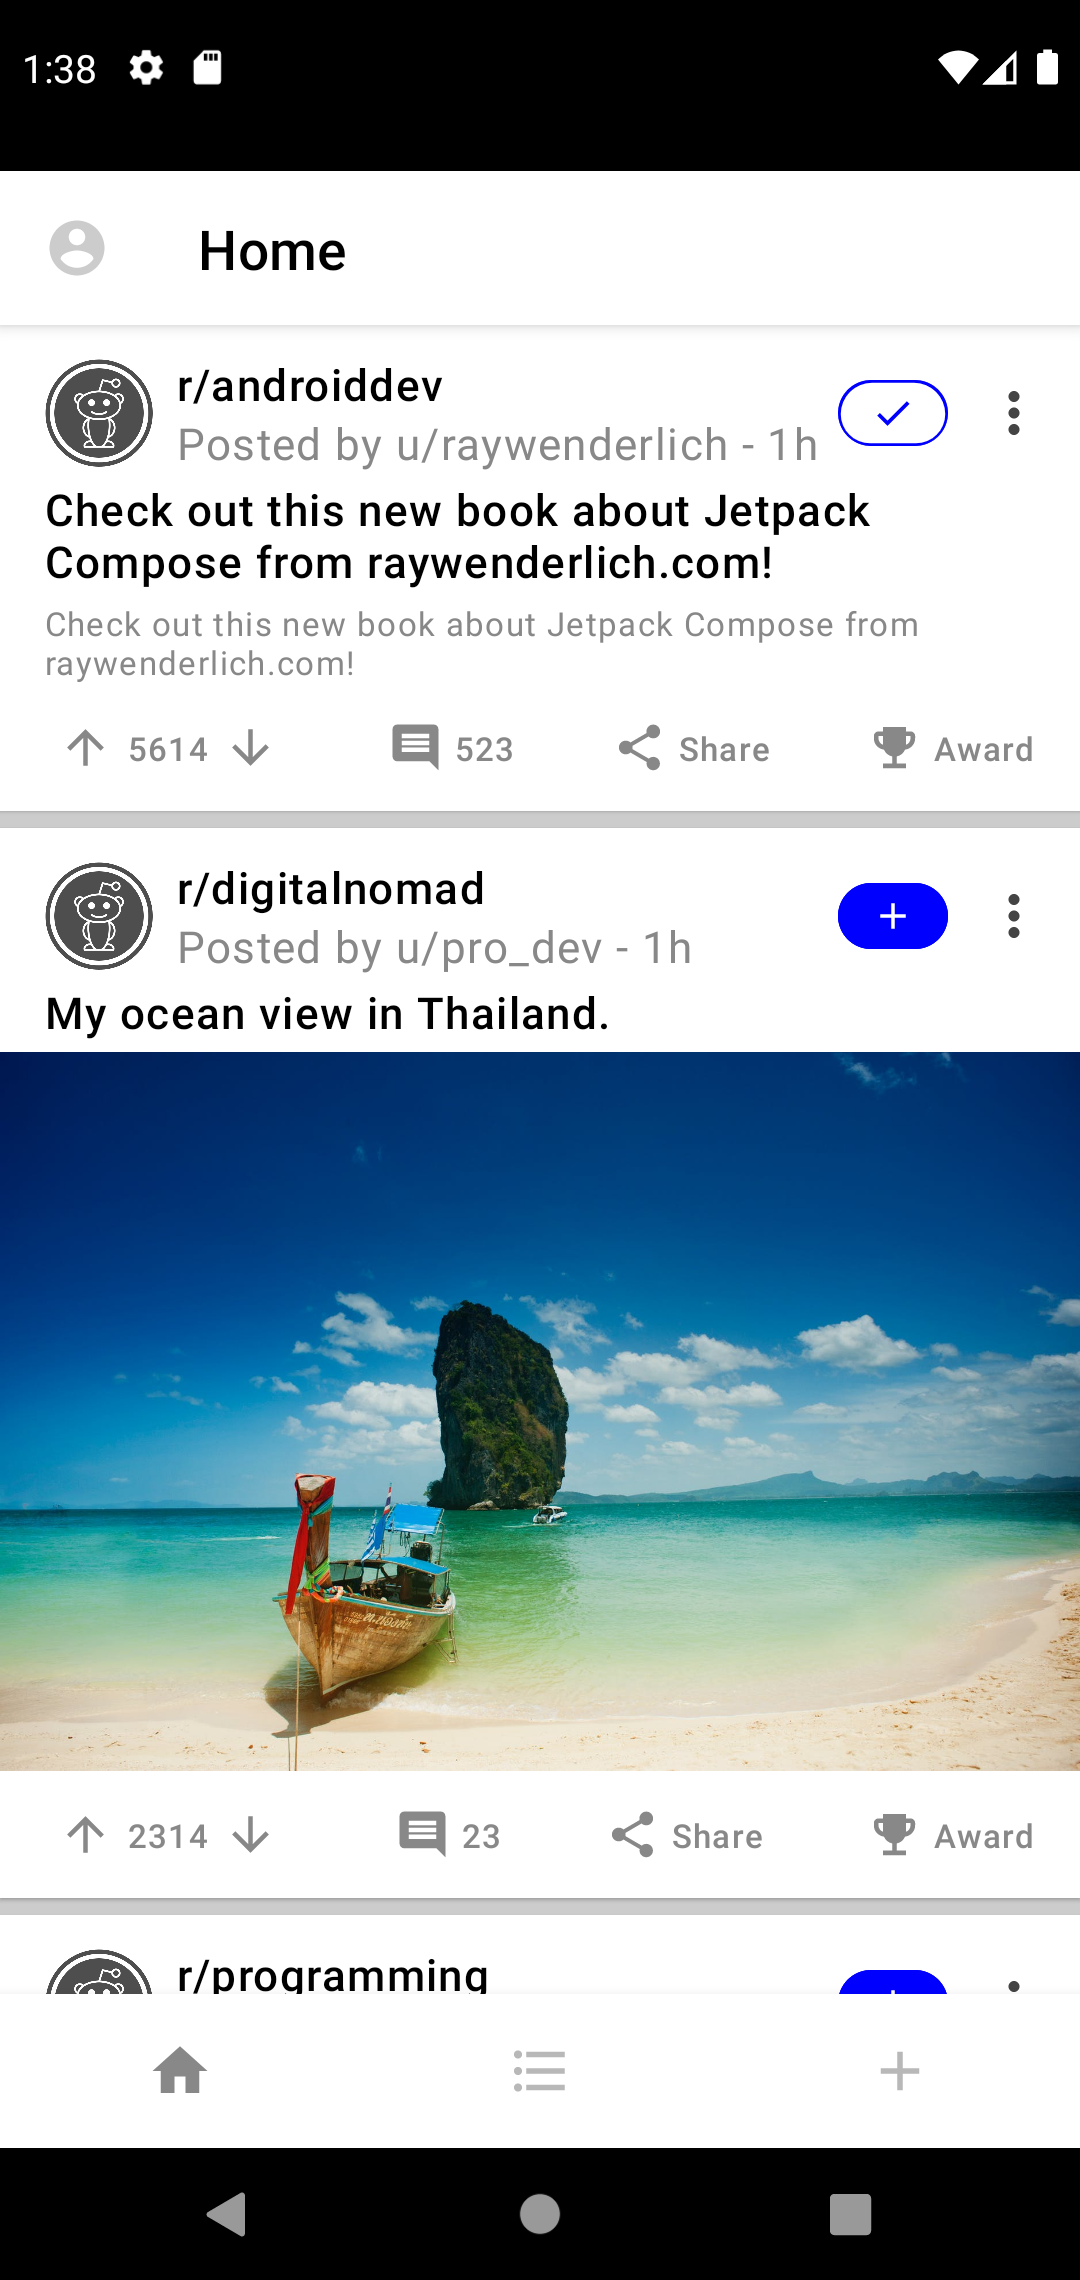 Posts With the Join Button